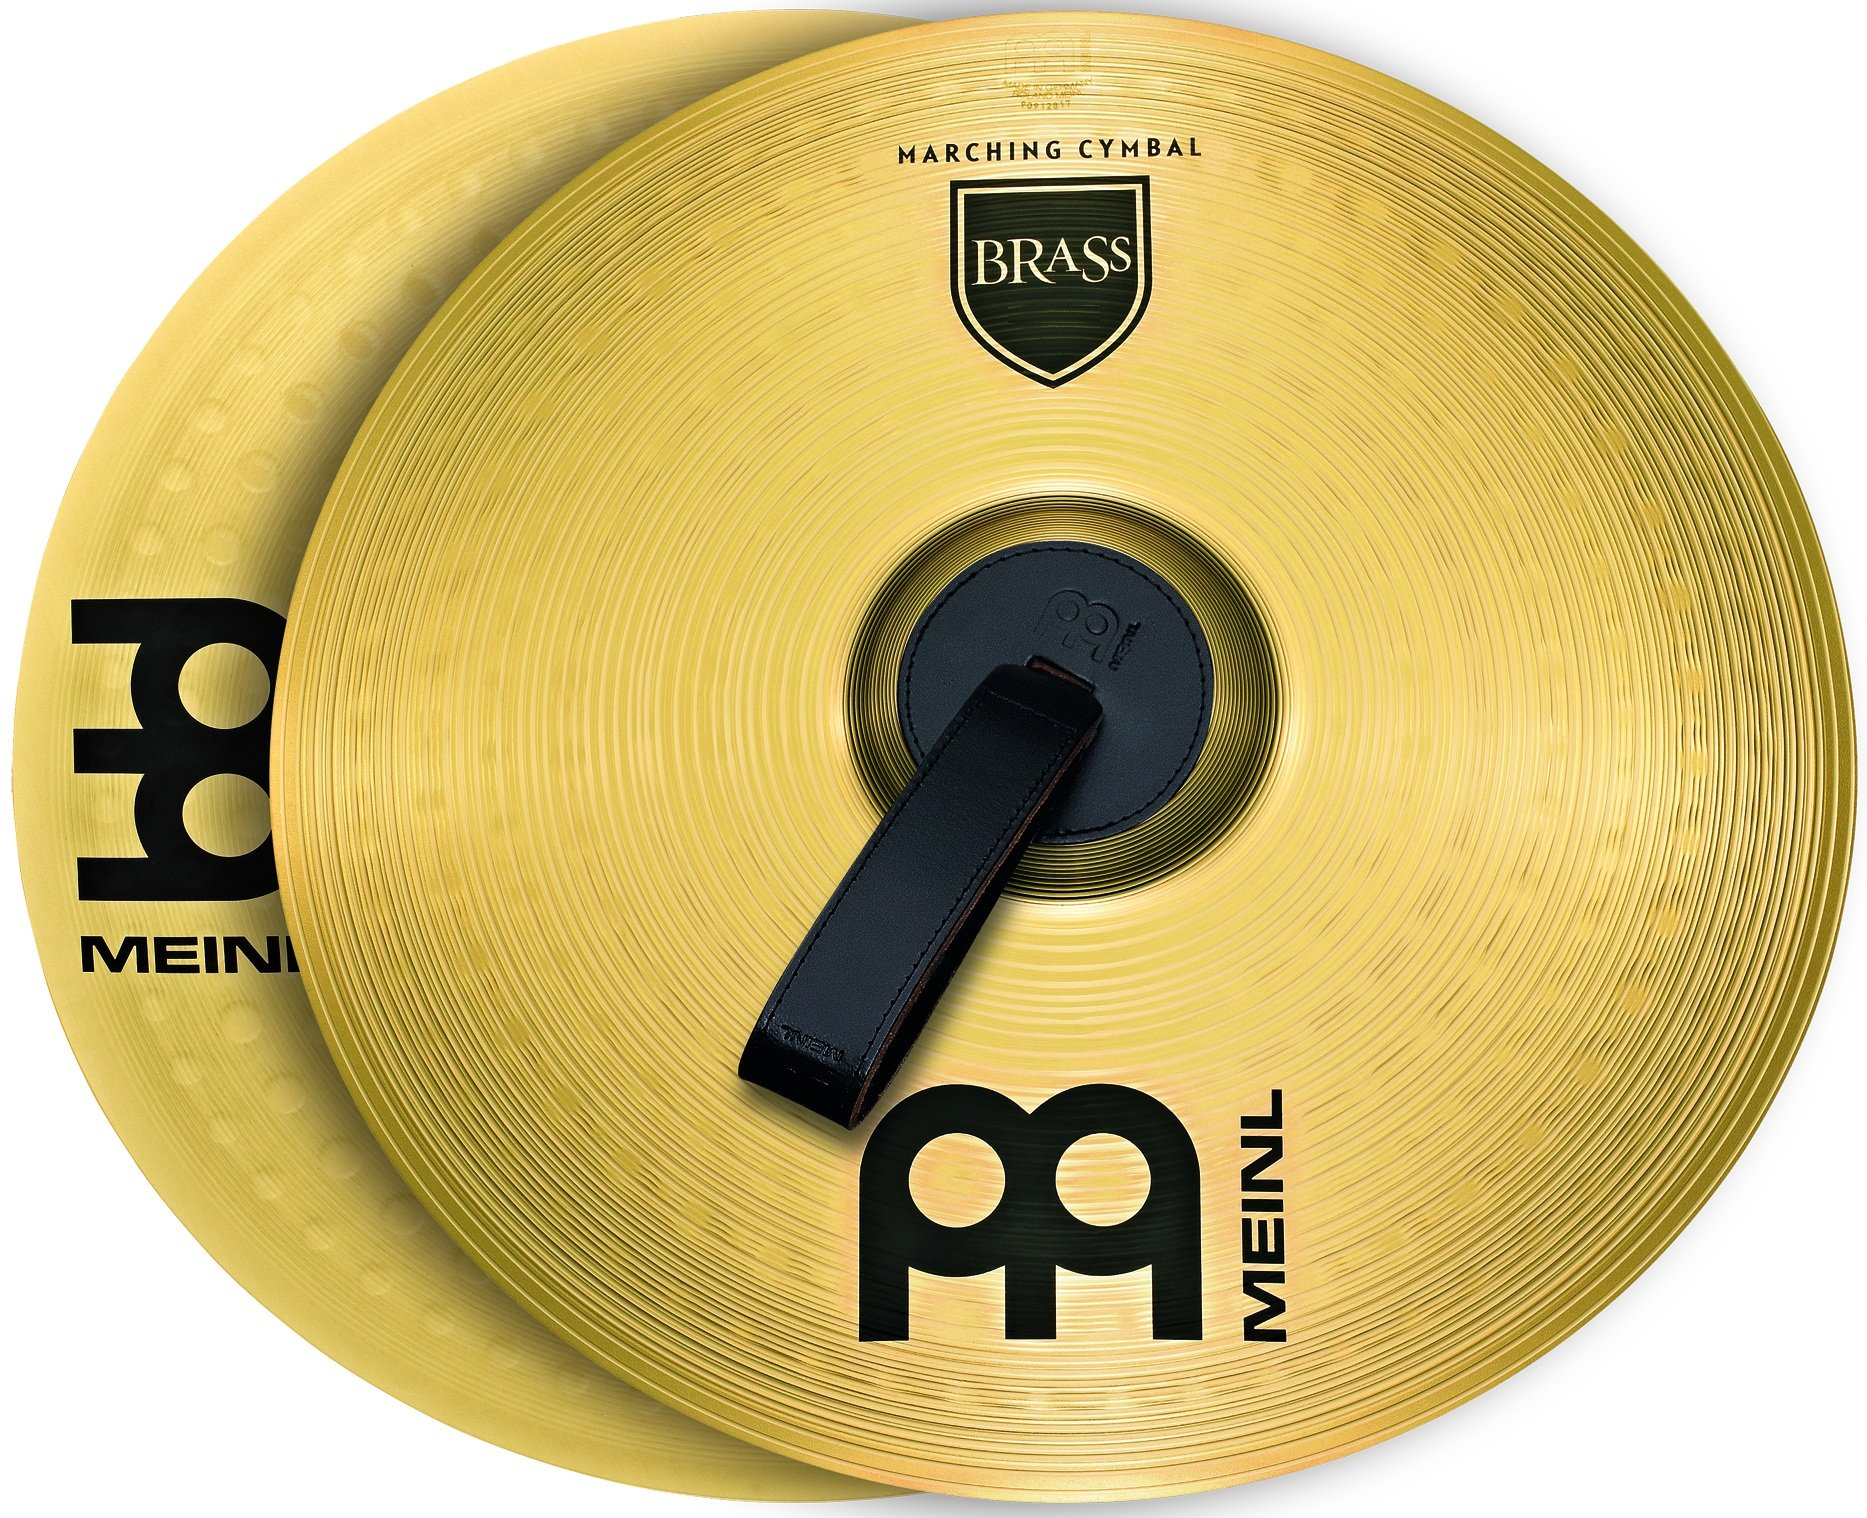 Meinl Cymbals MA-BR-13M Brass 13-Inch Marching Cymbal Pair with Straps